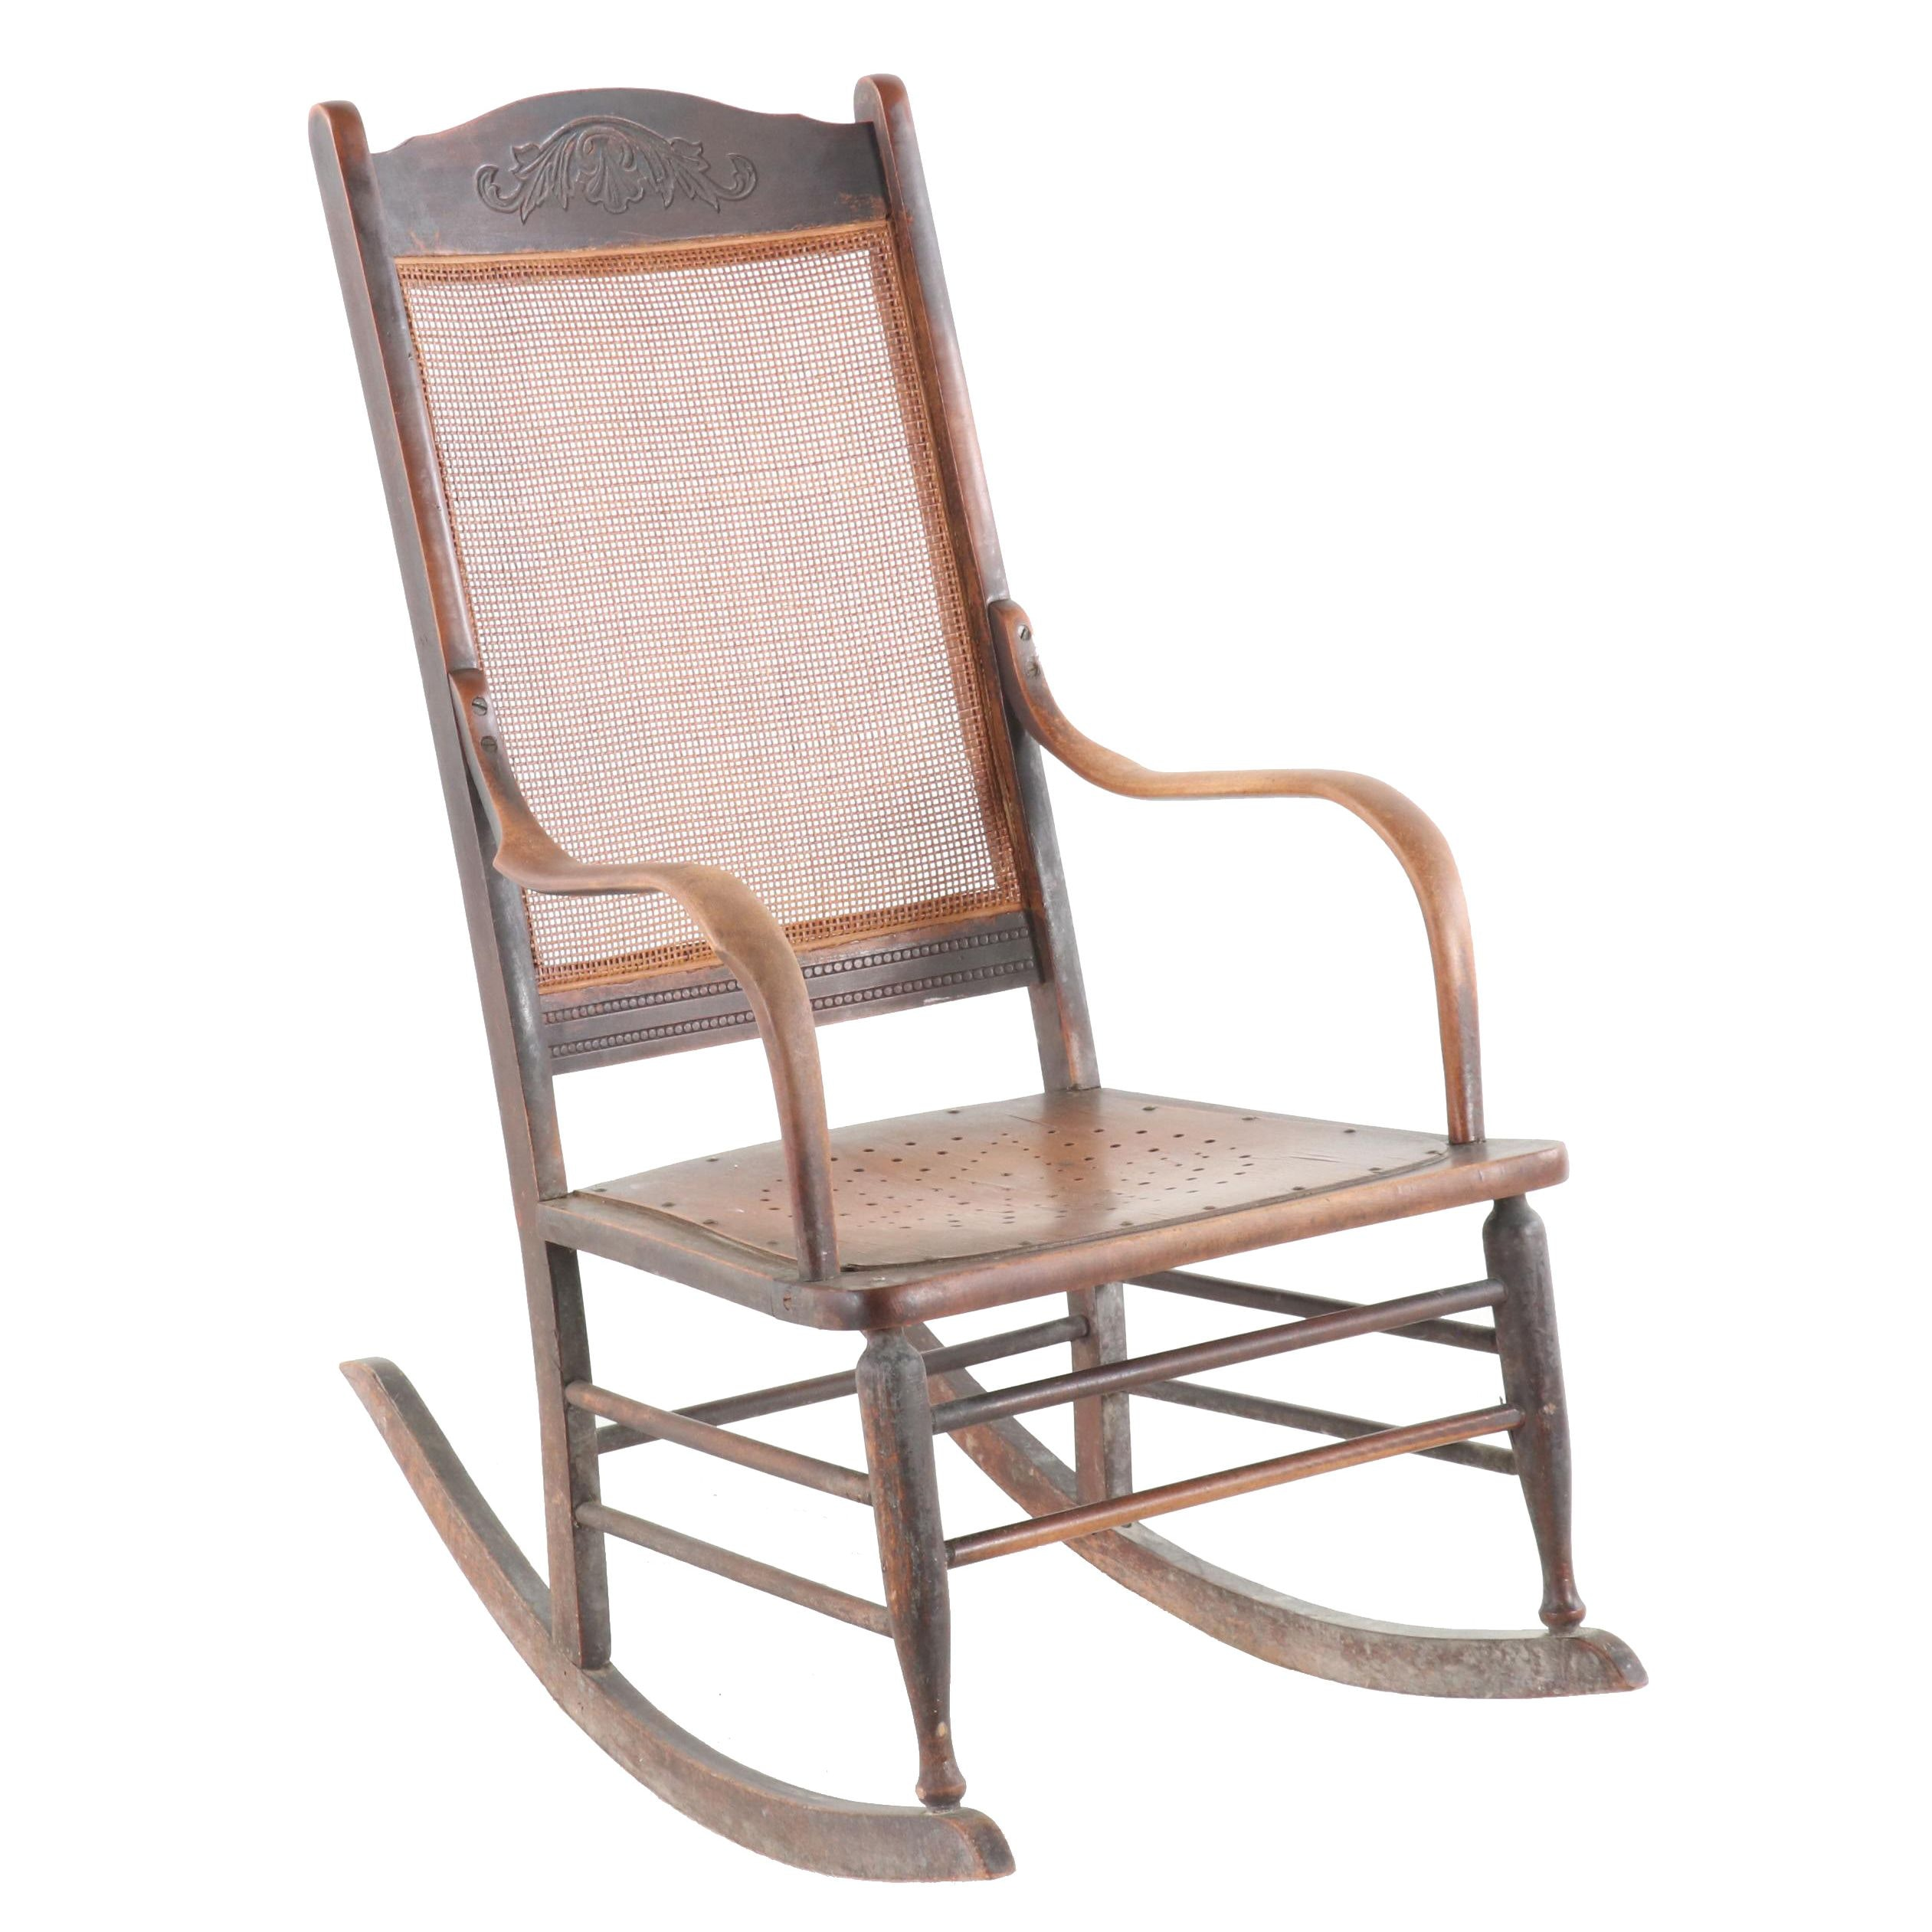 Late Victorian Wooden Cane Back Rocking Chair, Early 20th Century